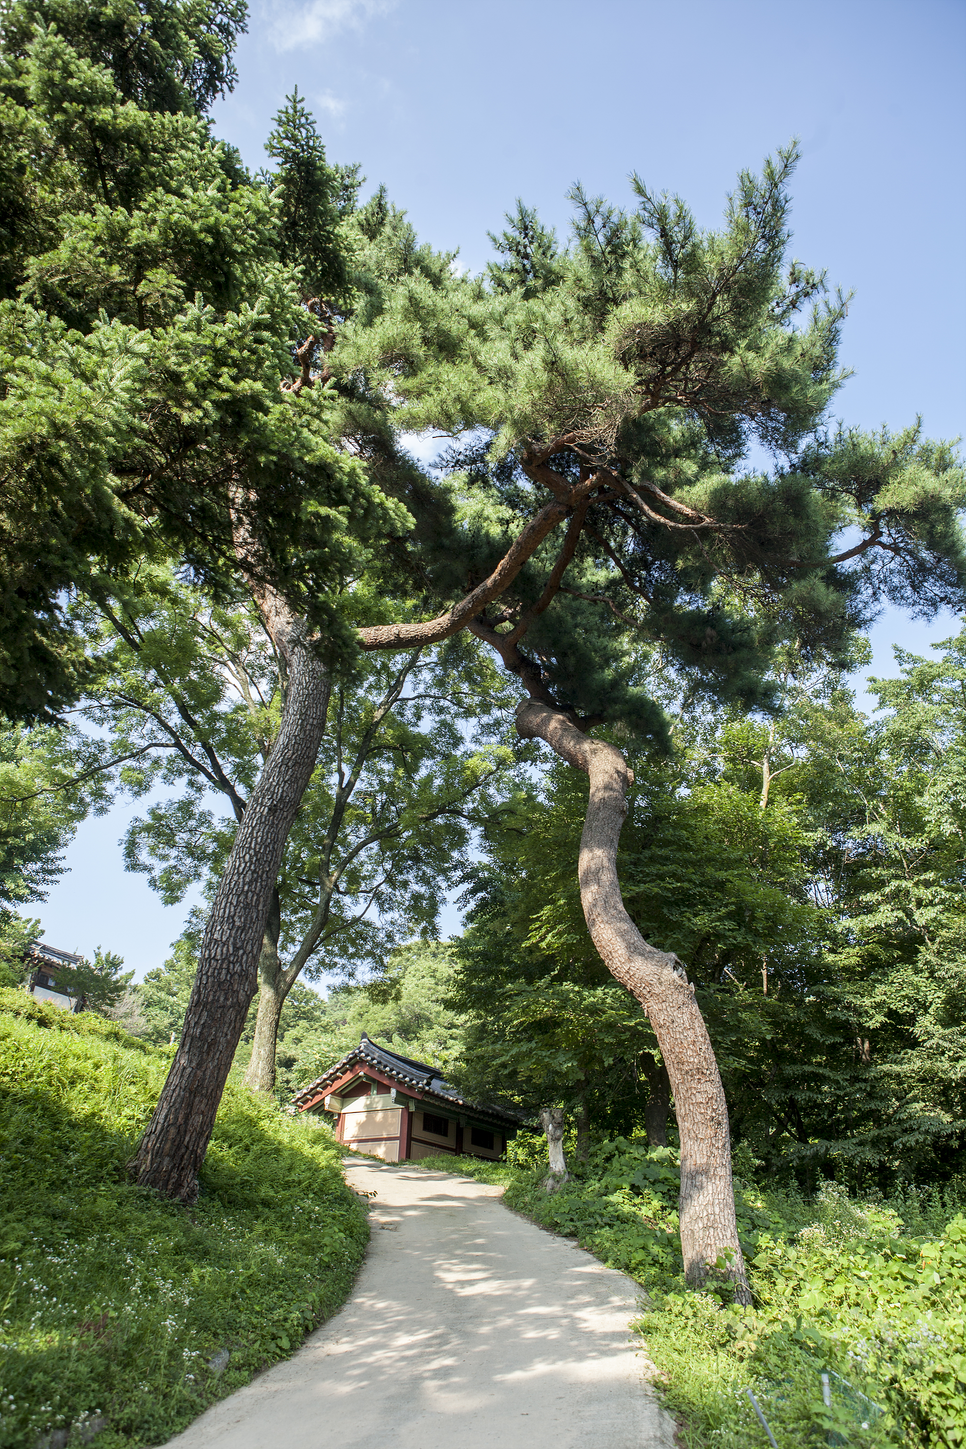 giant pine trees are guarding the entrance.